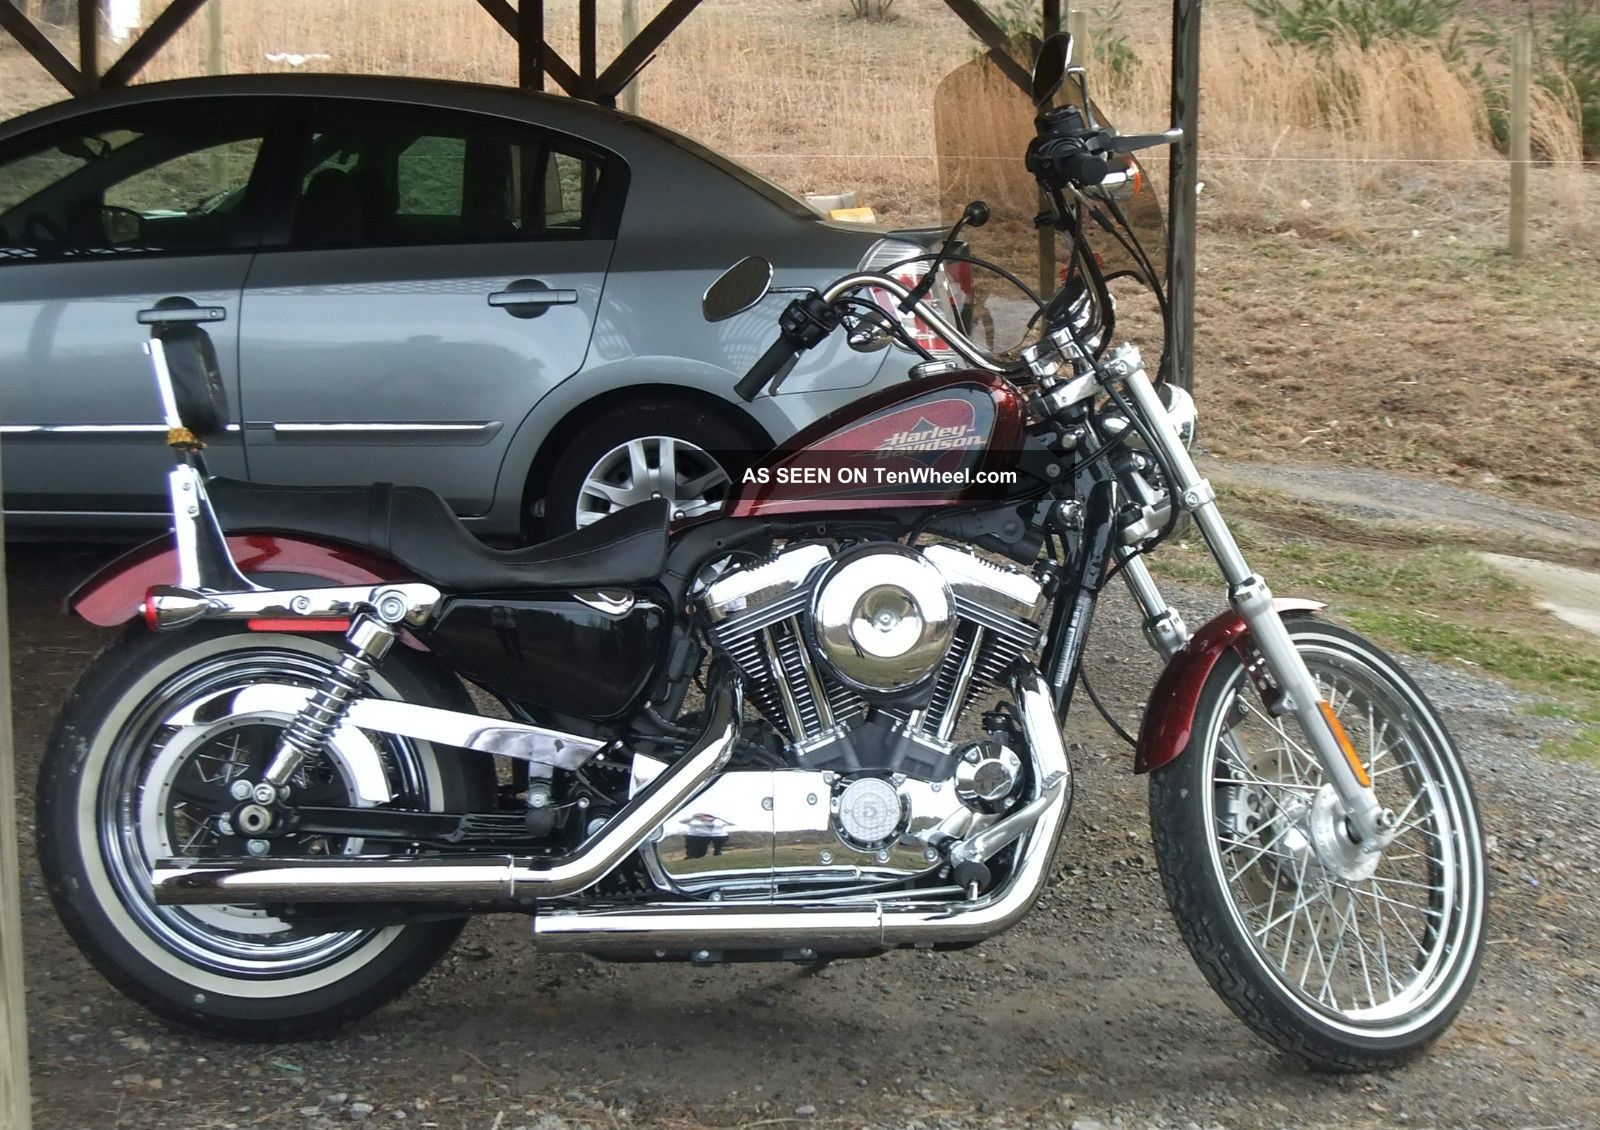 2012 Harley Davidson 1200l Custom With 72 On The Tank With Red Metal Flake Paint